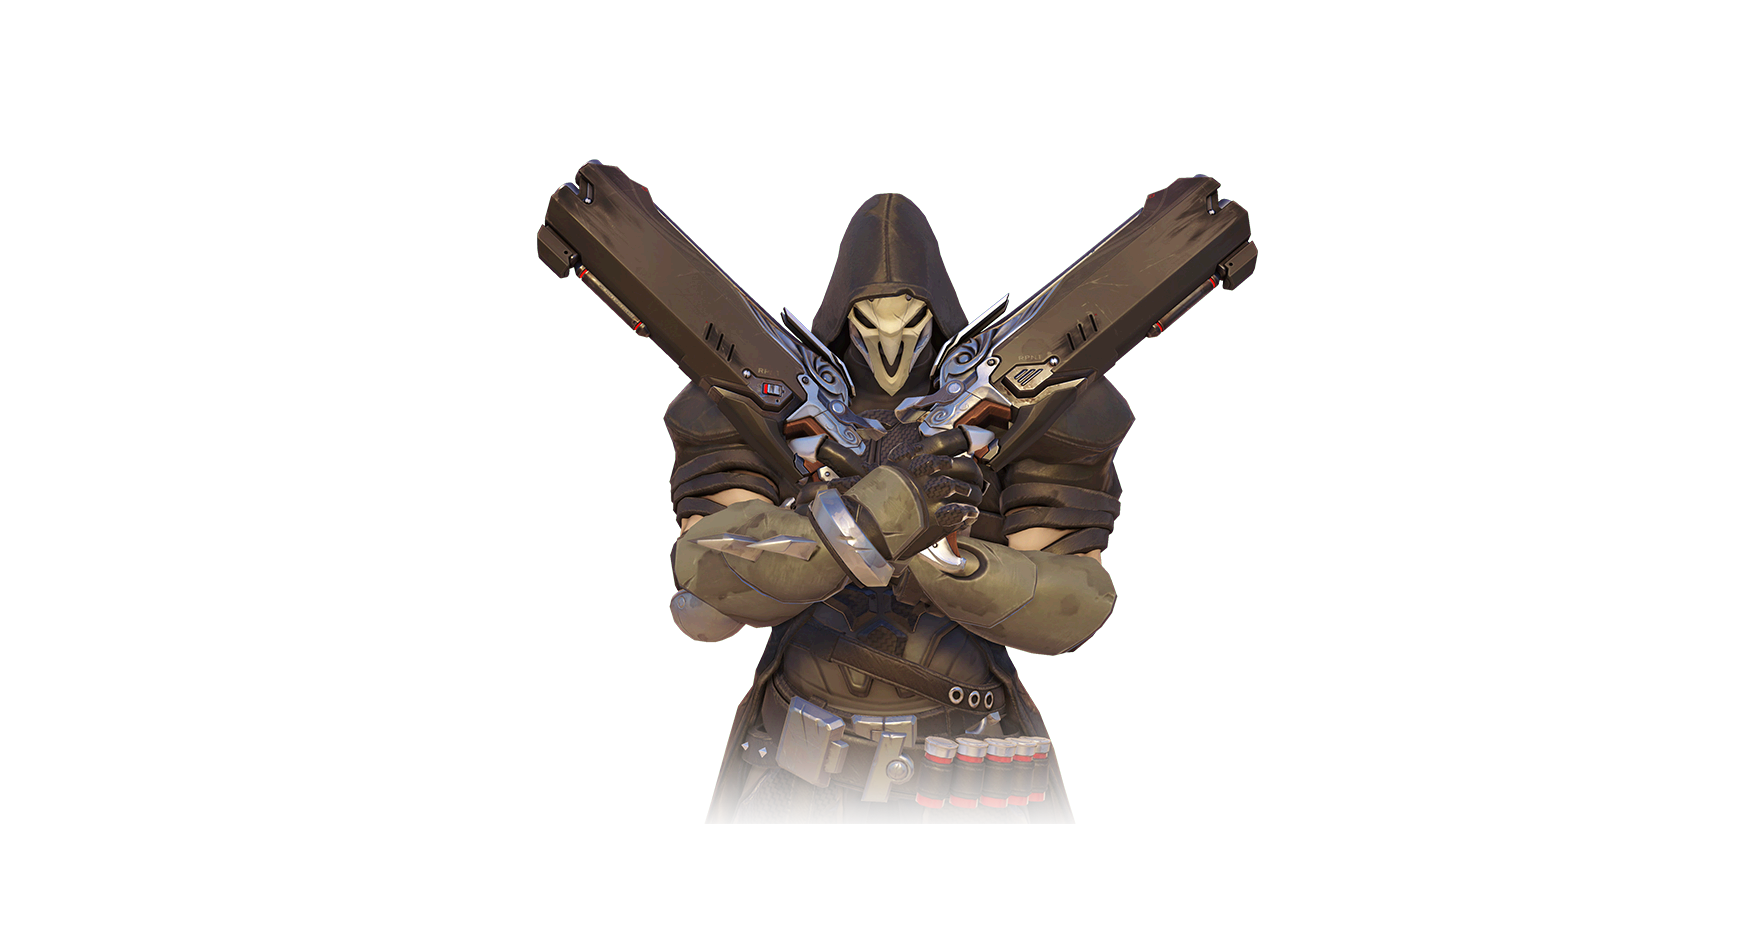 Image wiki fandom powered. Reaper overwatch png